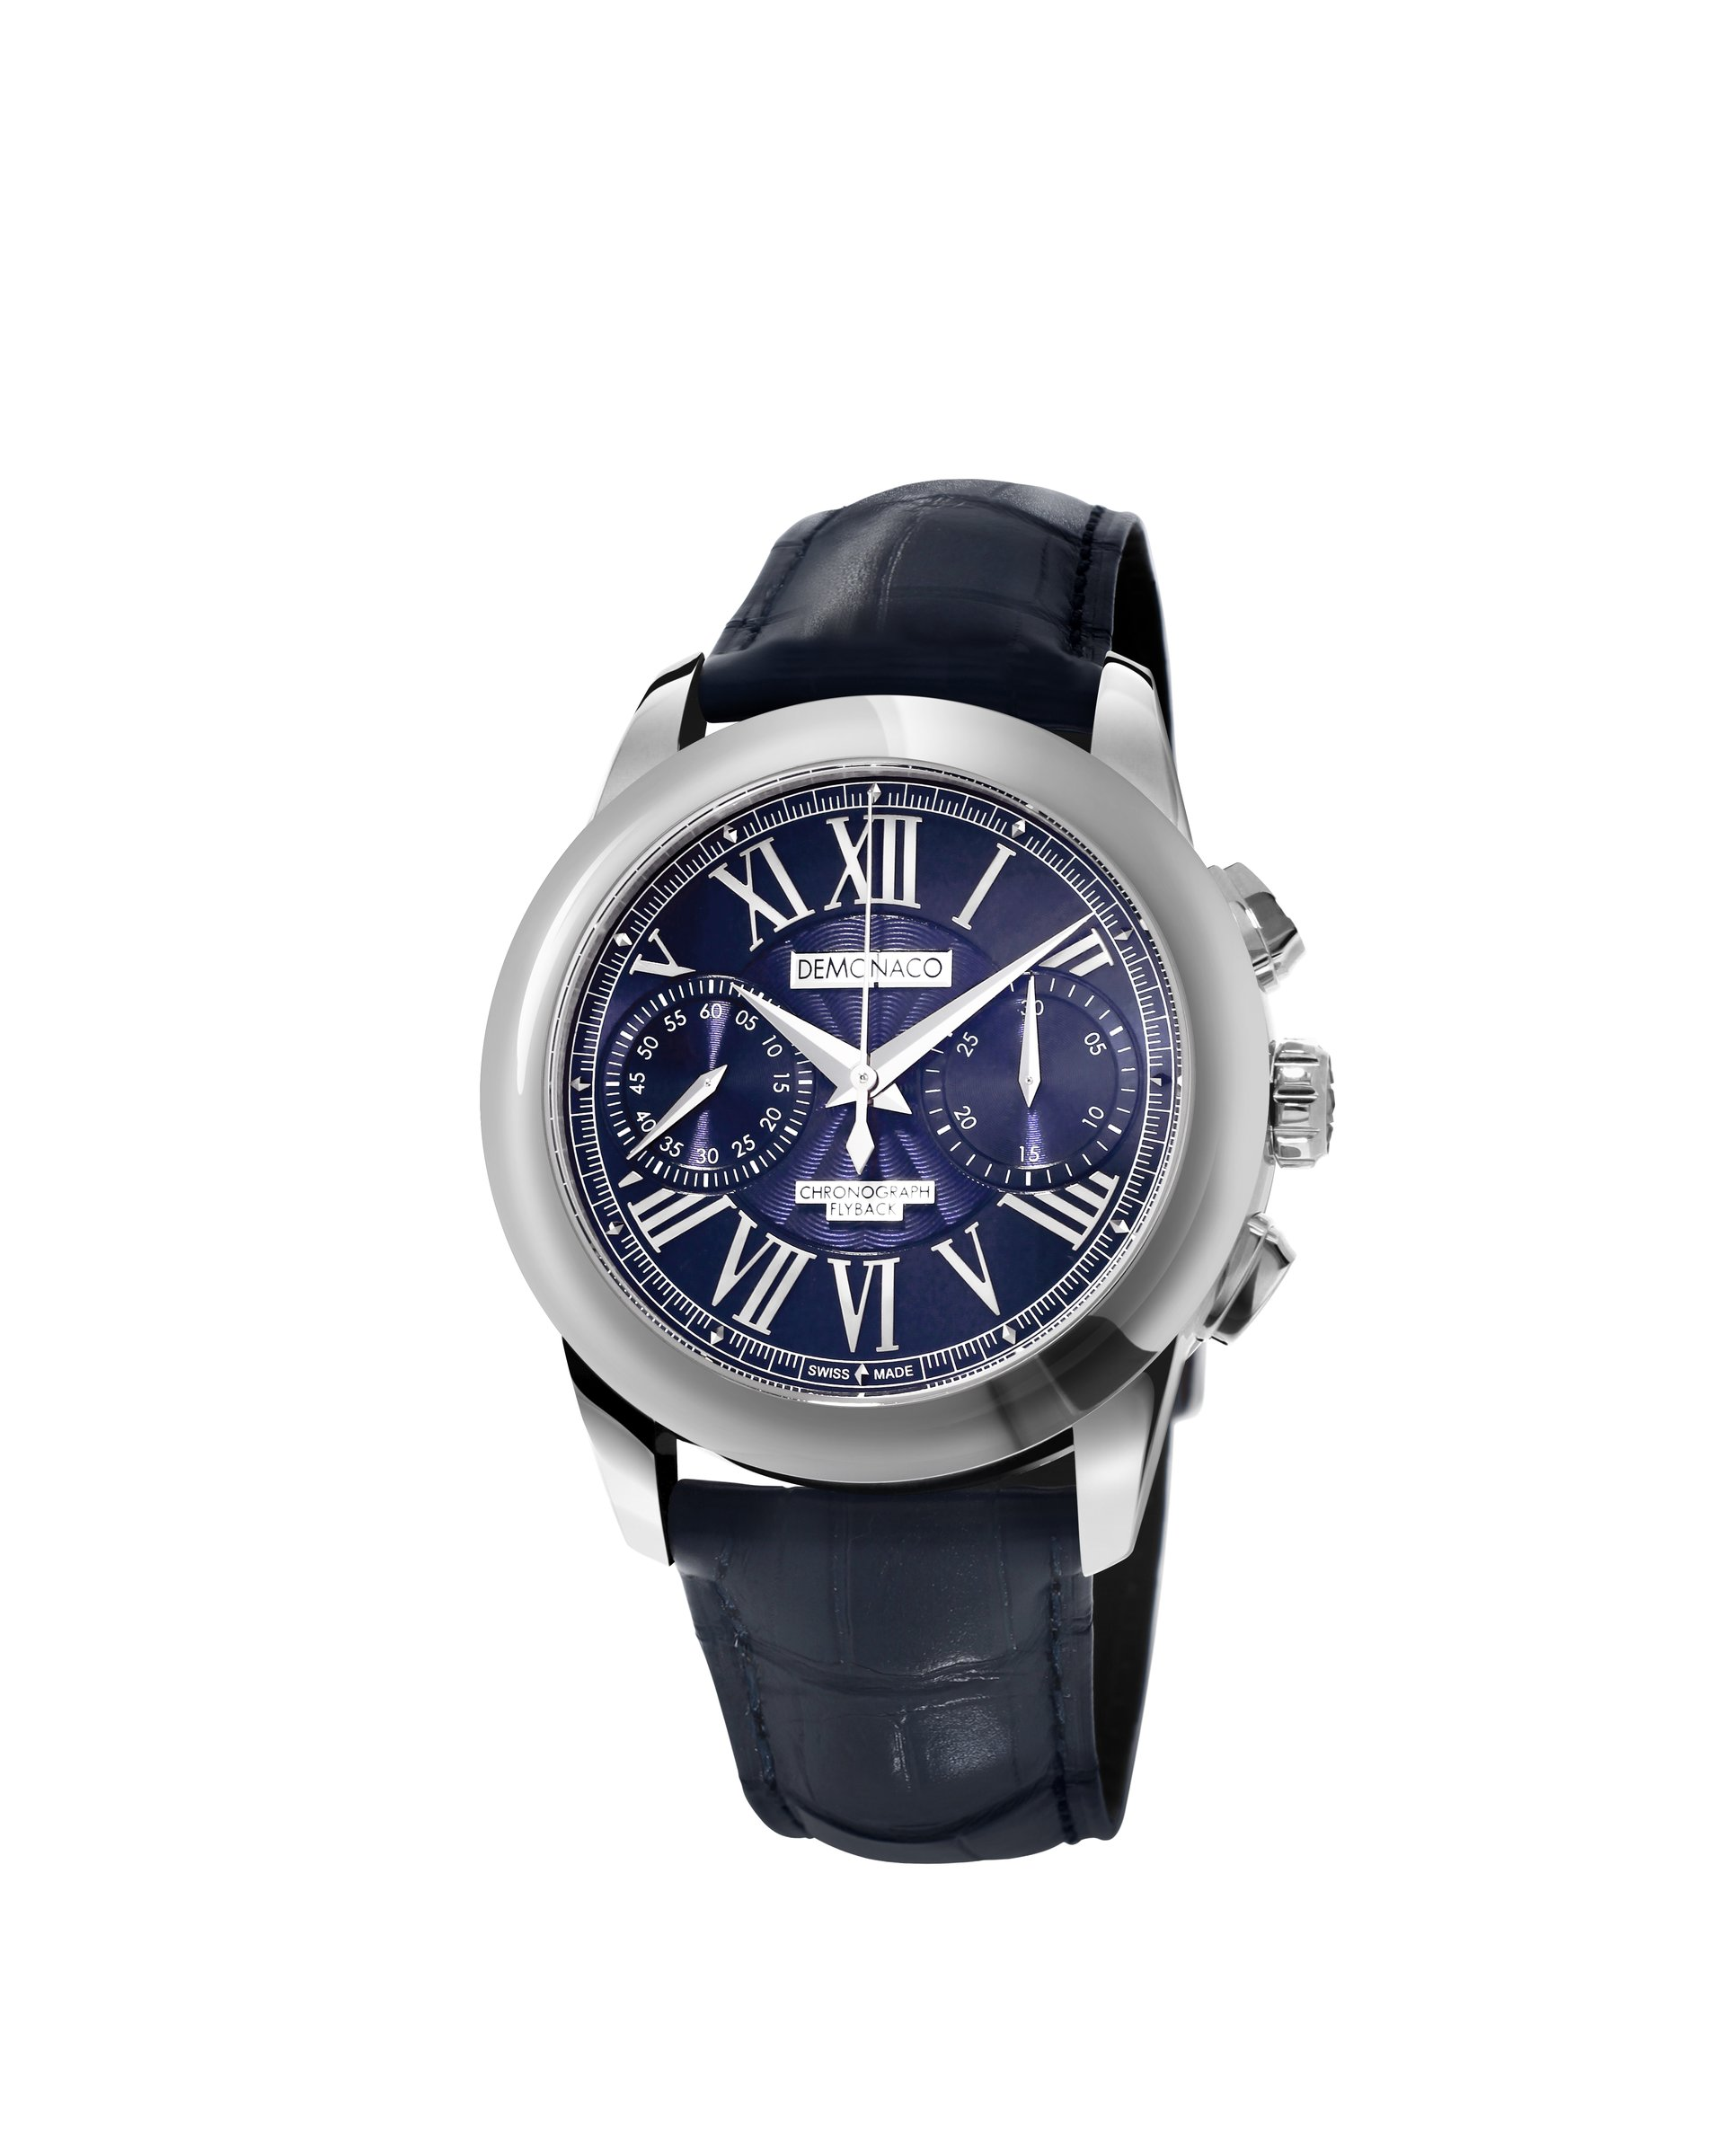 Ateliers deMonaco Admiral Chronographe Flyback Armure Reference: DMC-CHR-BLS-S